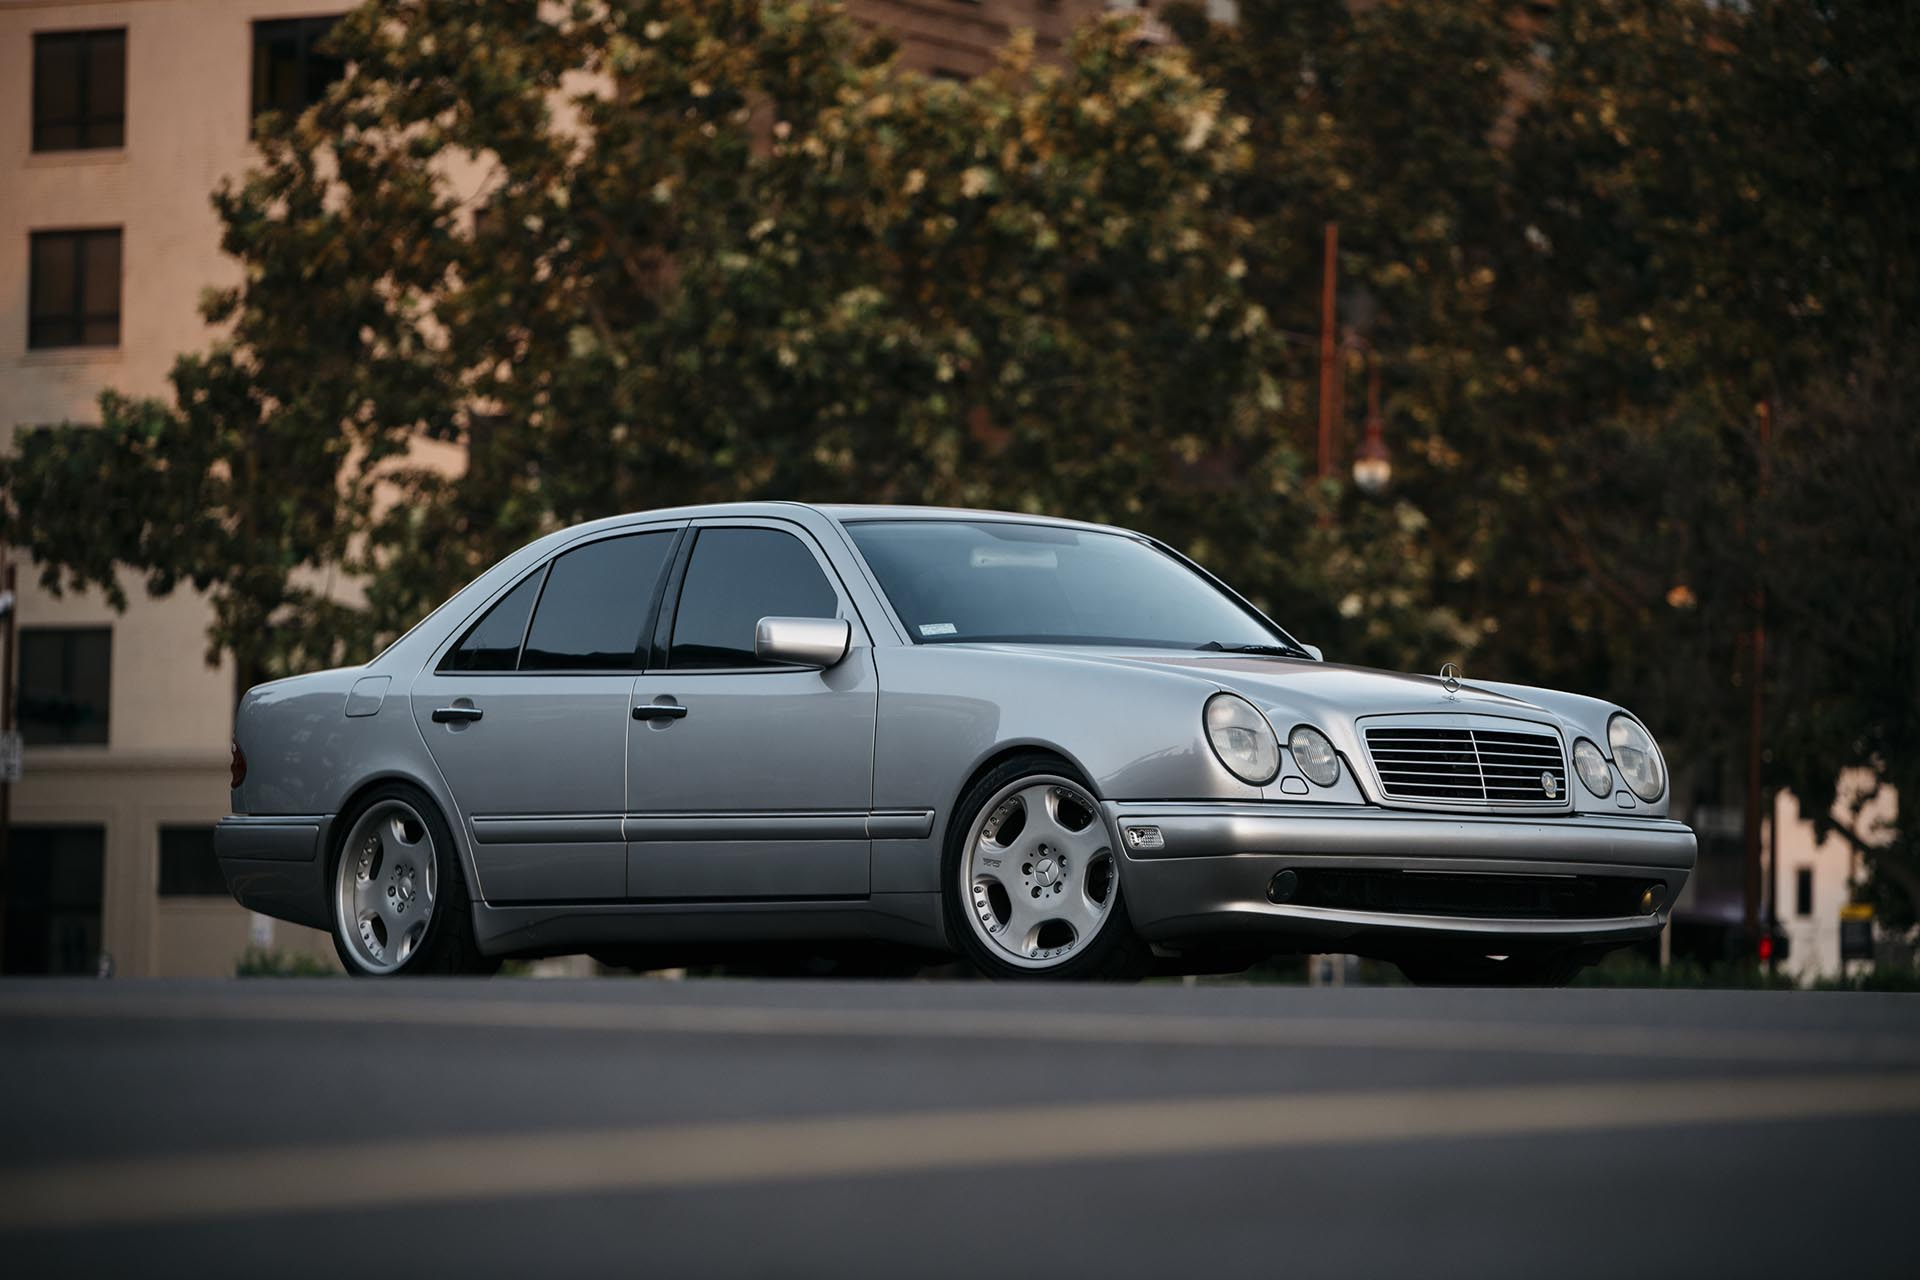 01_Mercedes-Benz E55 AMG manual swapped front profile 02